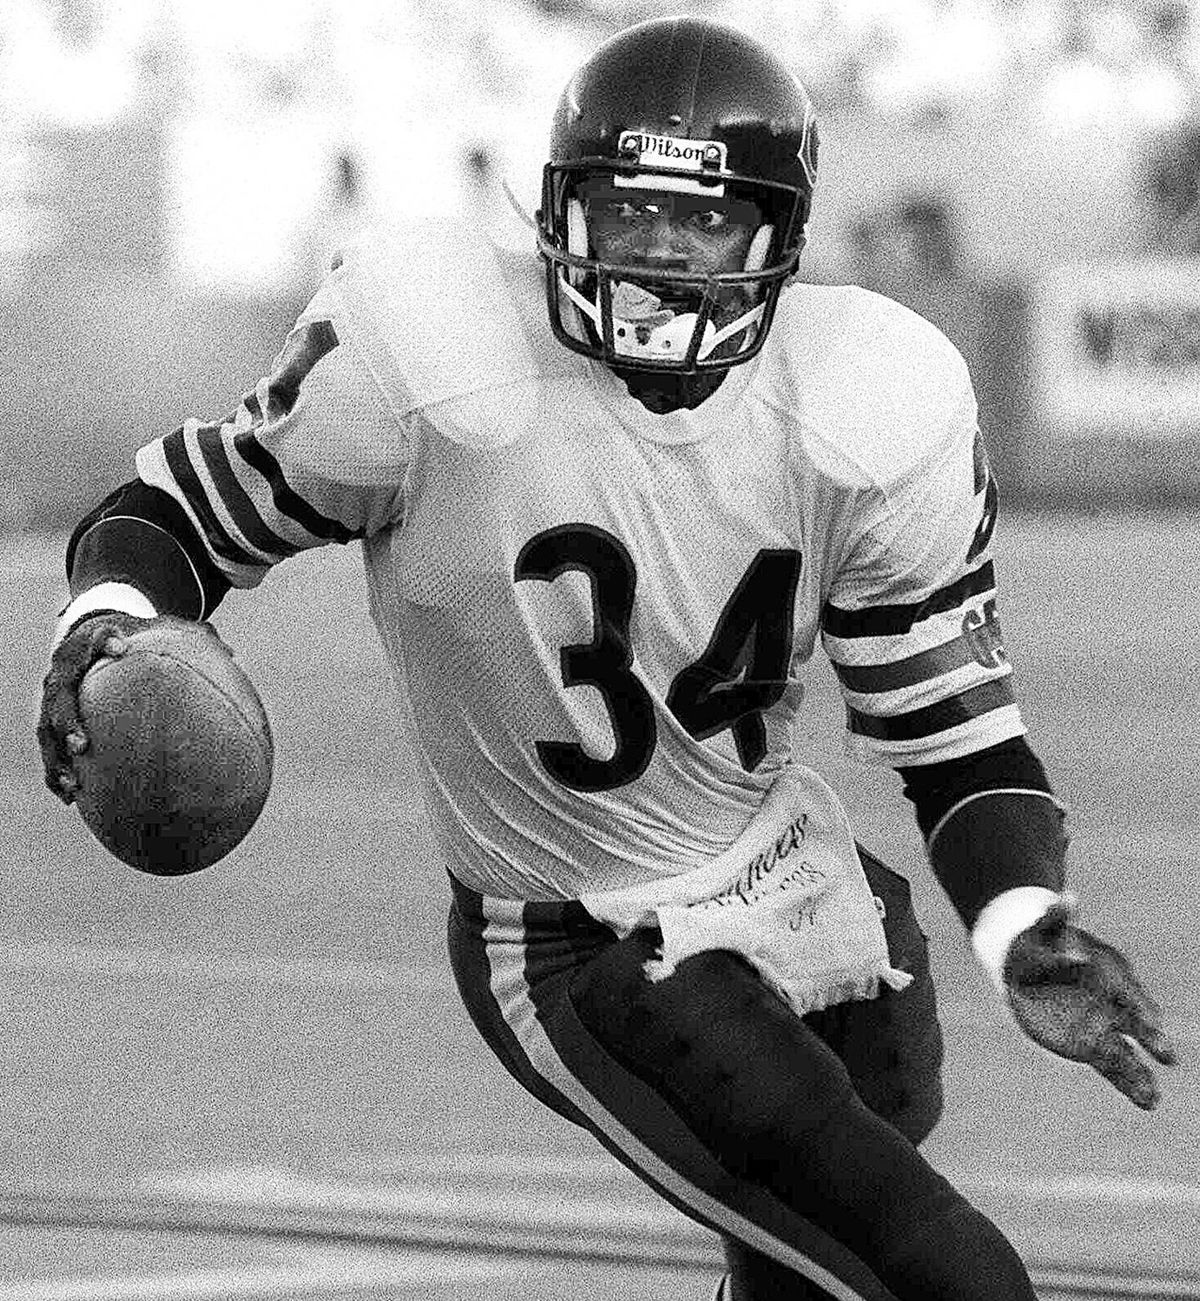 Walter Payton carrying the ball at Soldier Field in 1985.